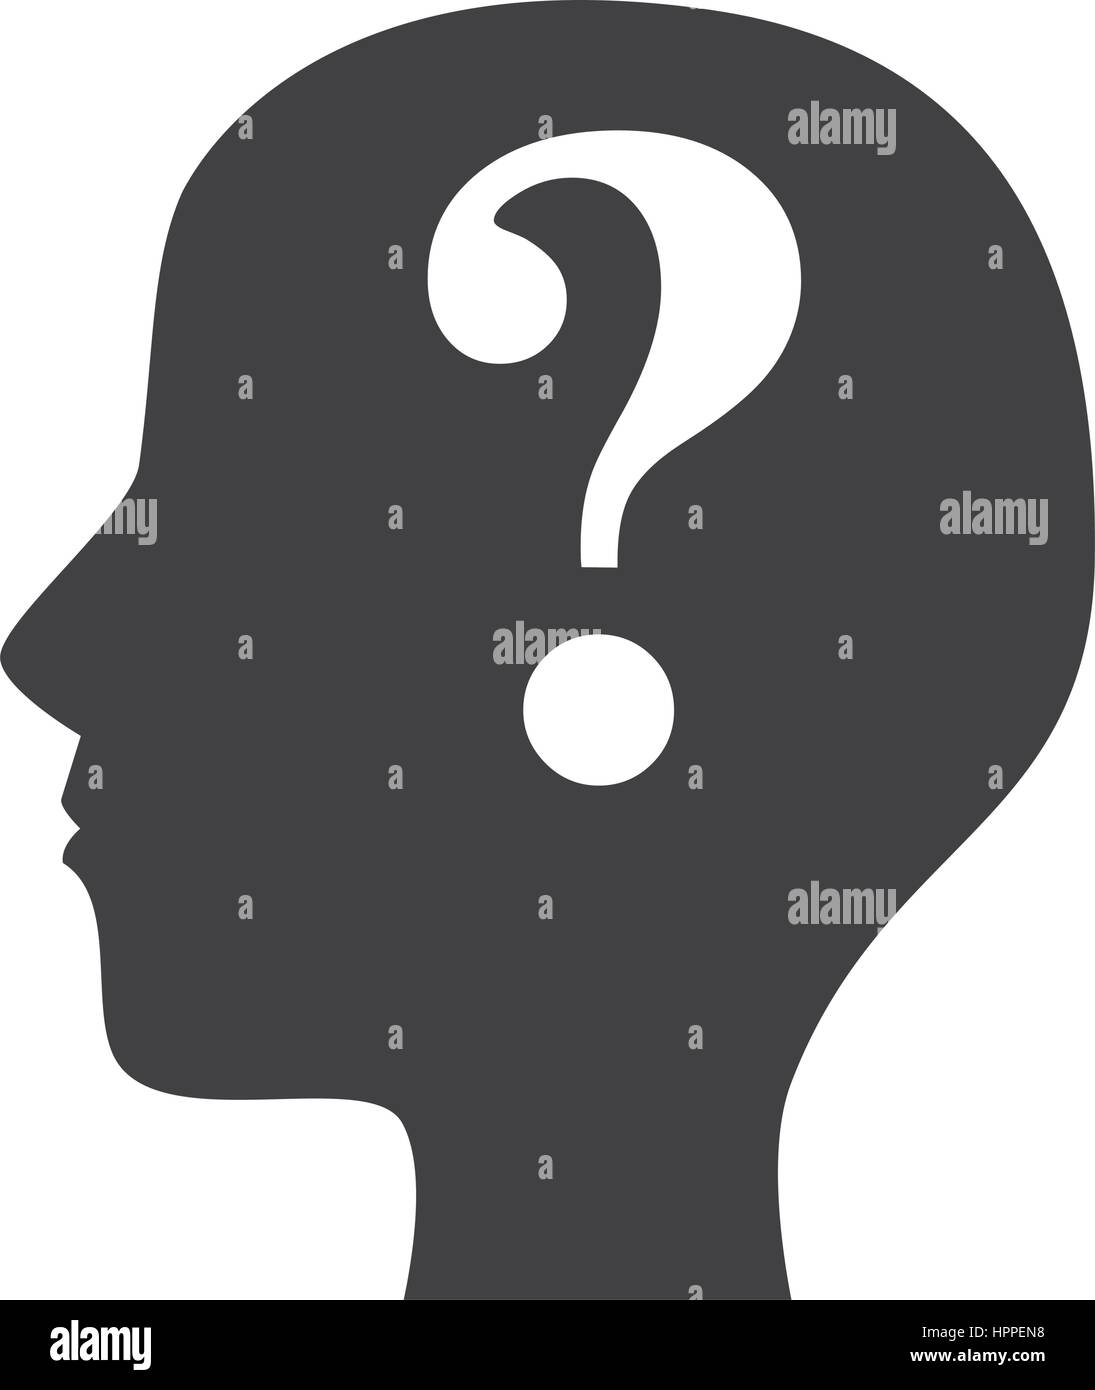 person silhouette with question mark Stock Vector